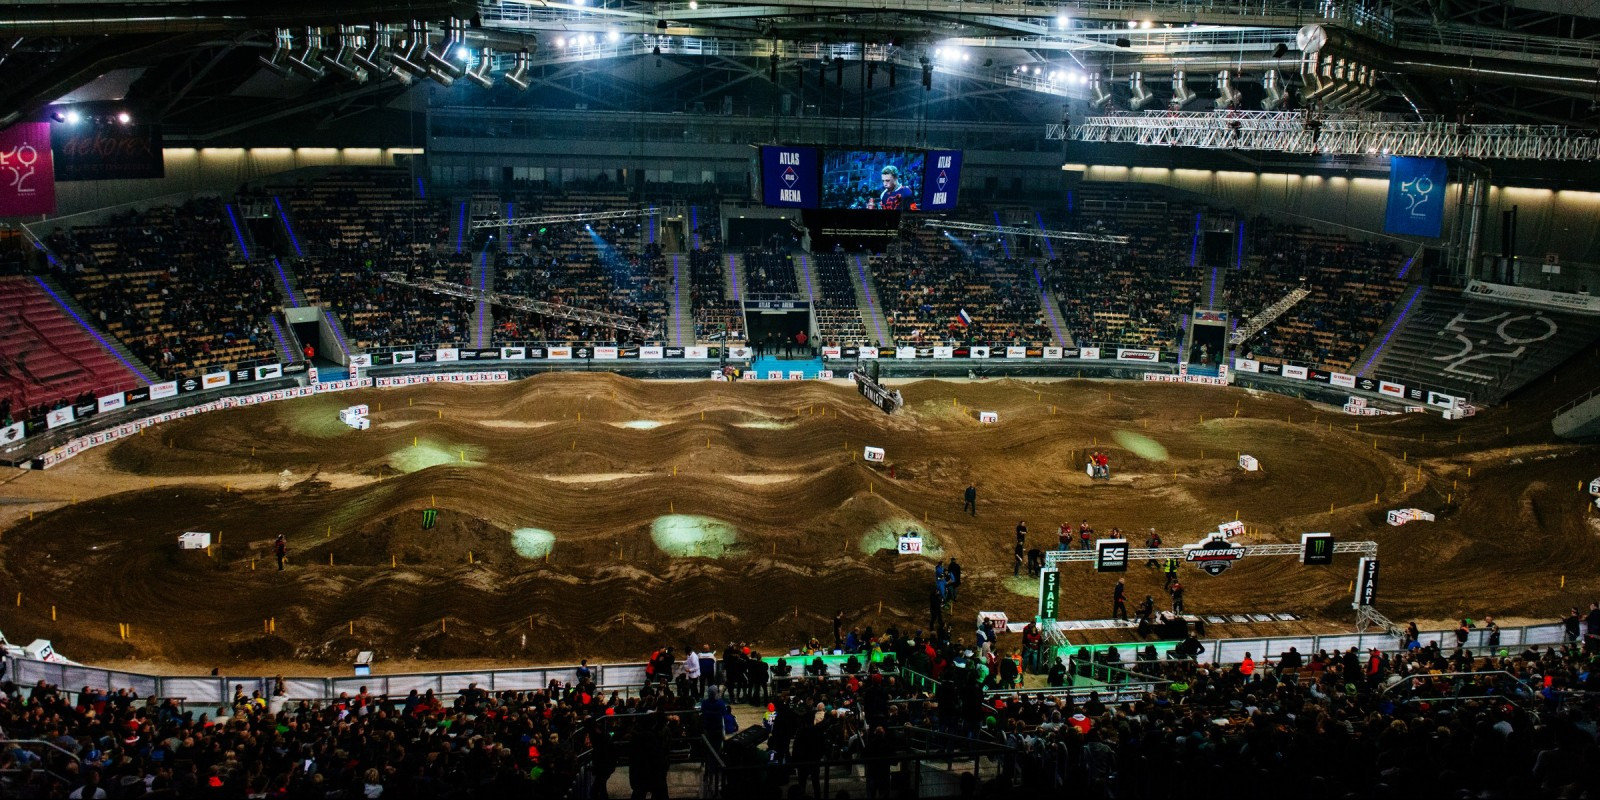 Supercross King of Poland 2016 - Venue overview